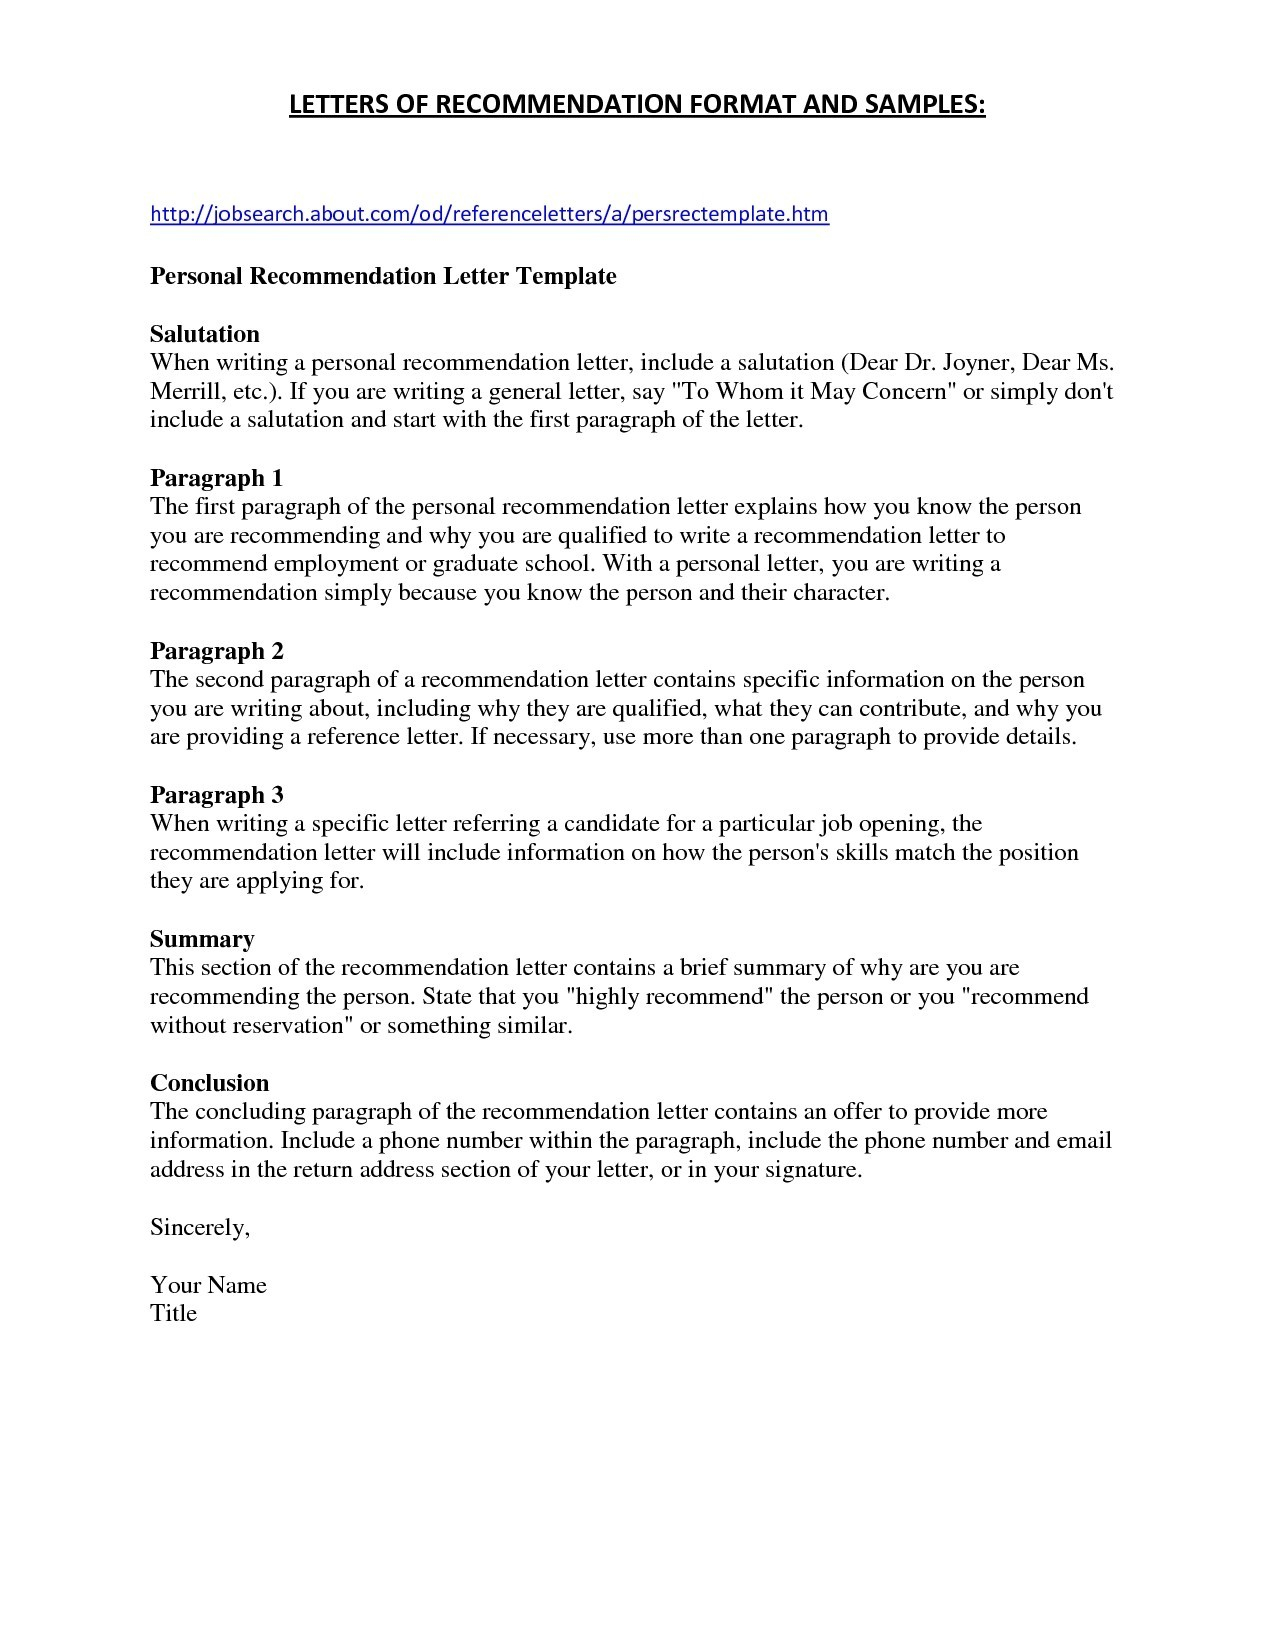 Proof Of Employment Letter Template - Employment Certificate Sample for Clinic Nurse Best Transfer